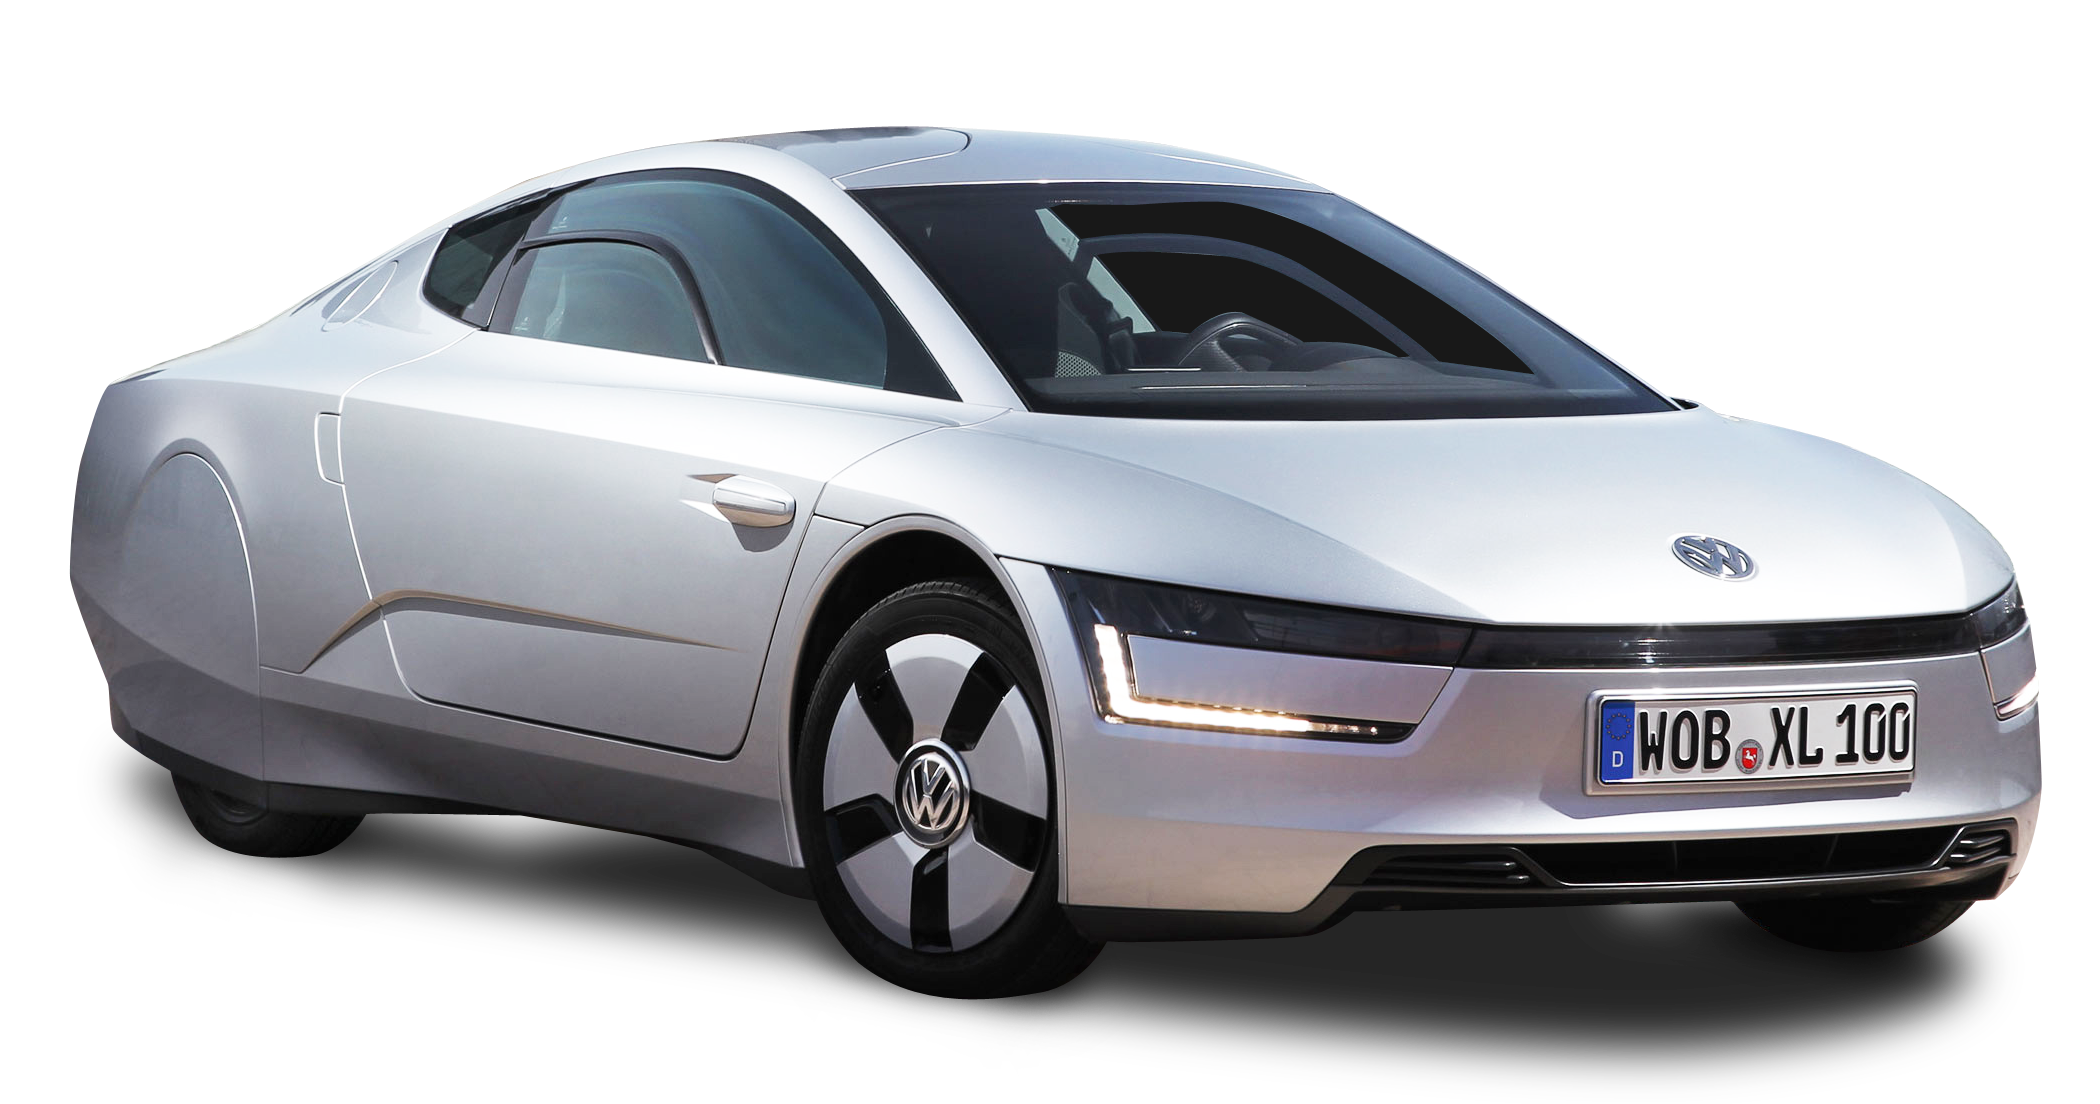 Silver car clipart svg royalty free library Silver Volkswagen XL1 Car PNG Image - PurePNG | Free transparent CC0 ... svg royalty free library